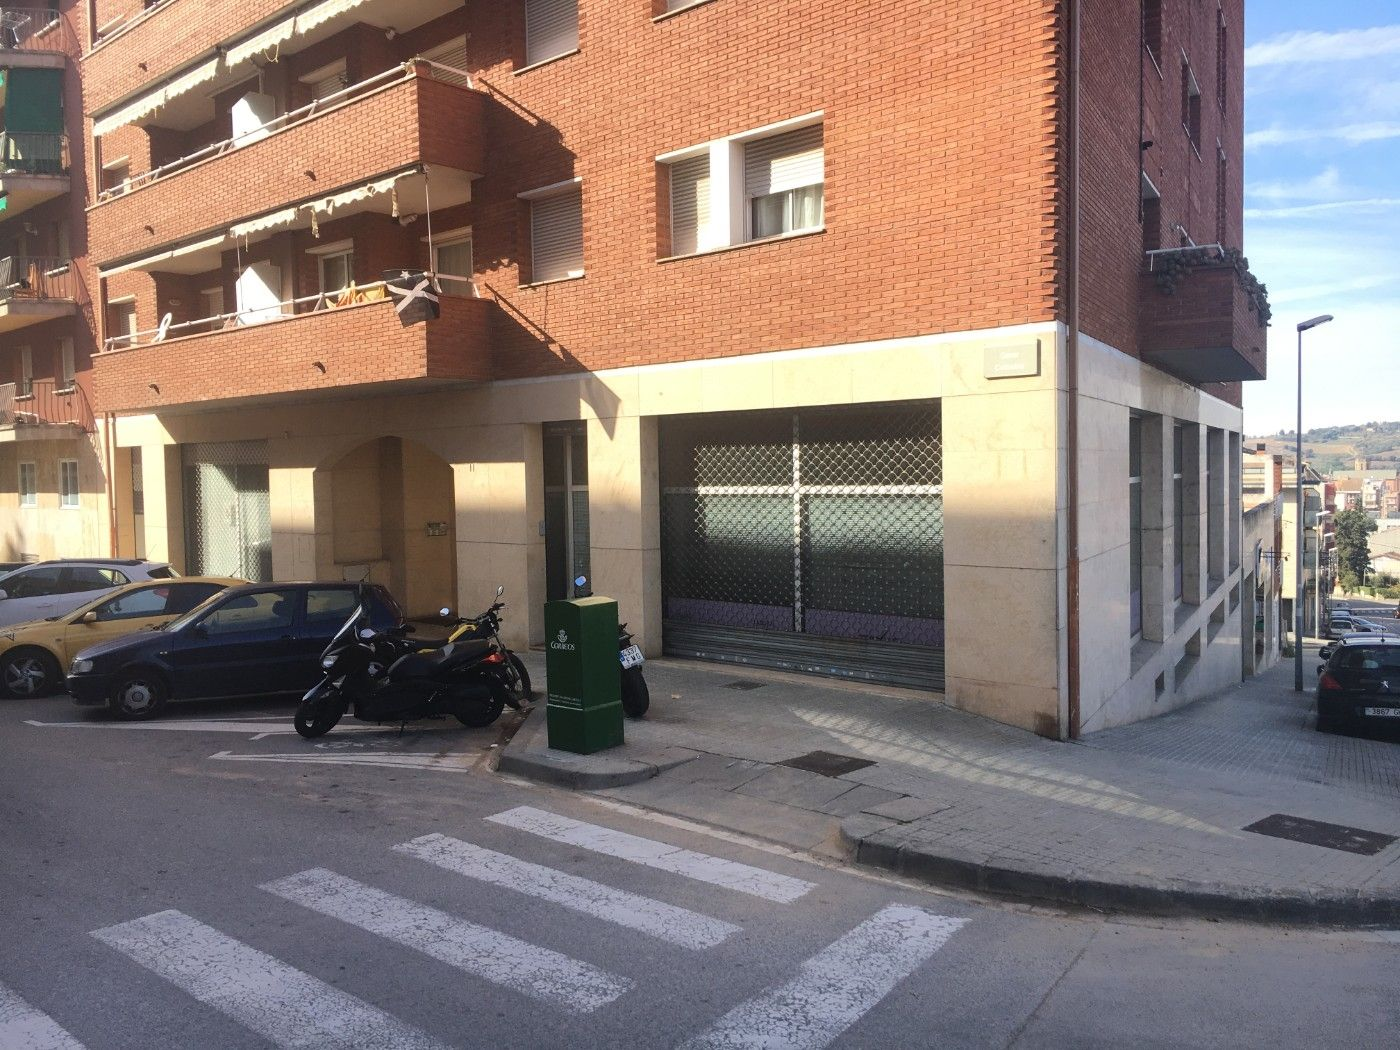 Local Comercial en Carrer colombia, 11. Local comercial venta granollers